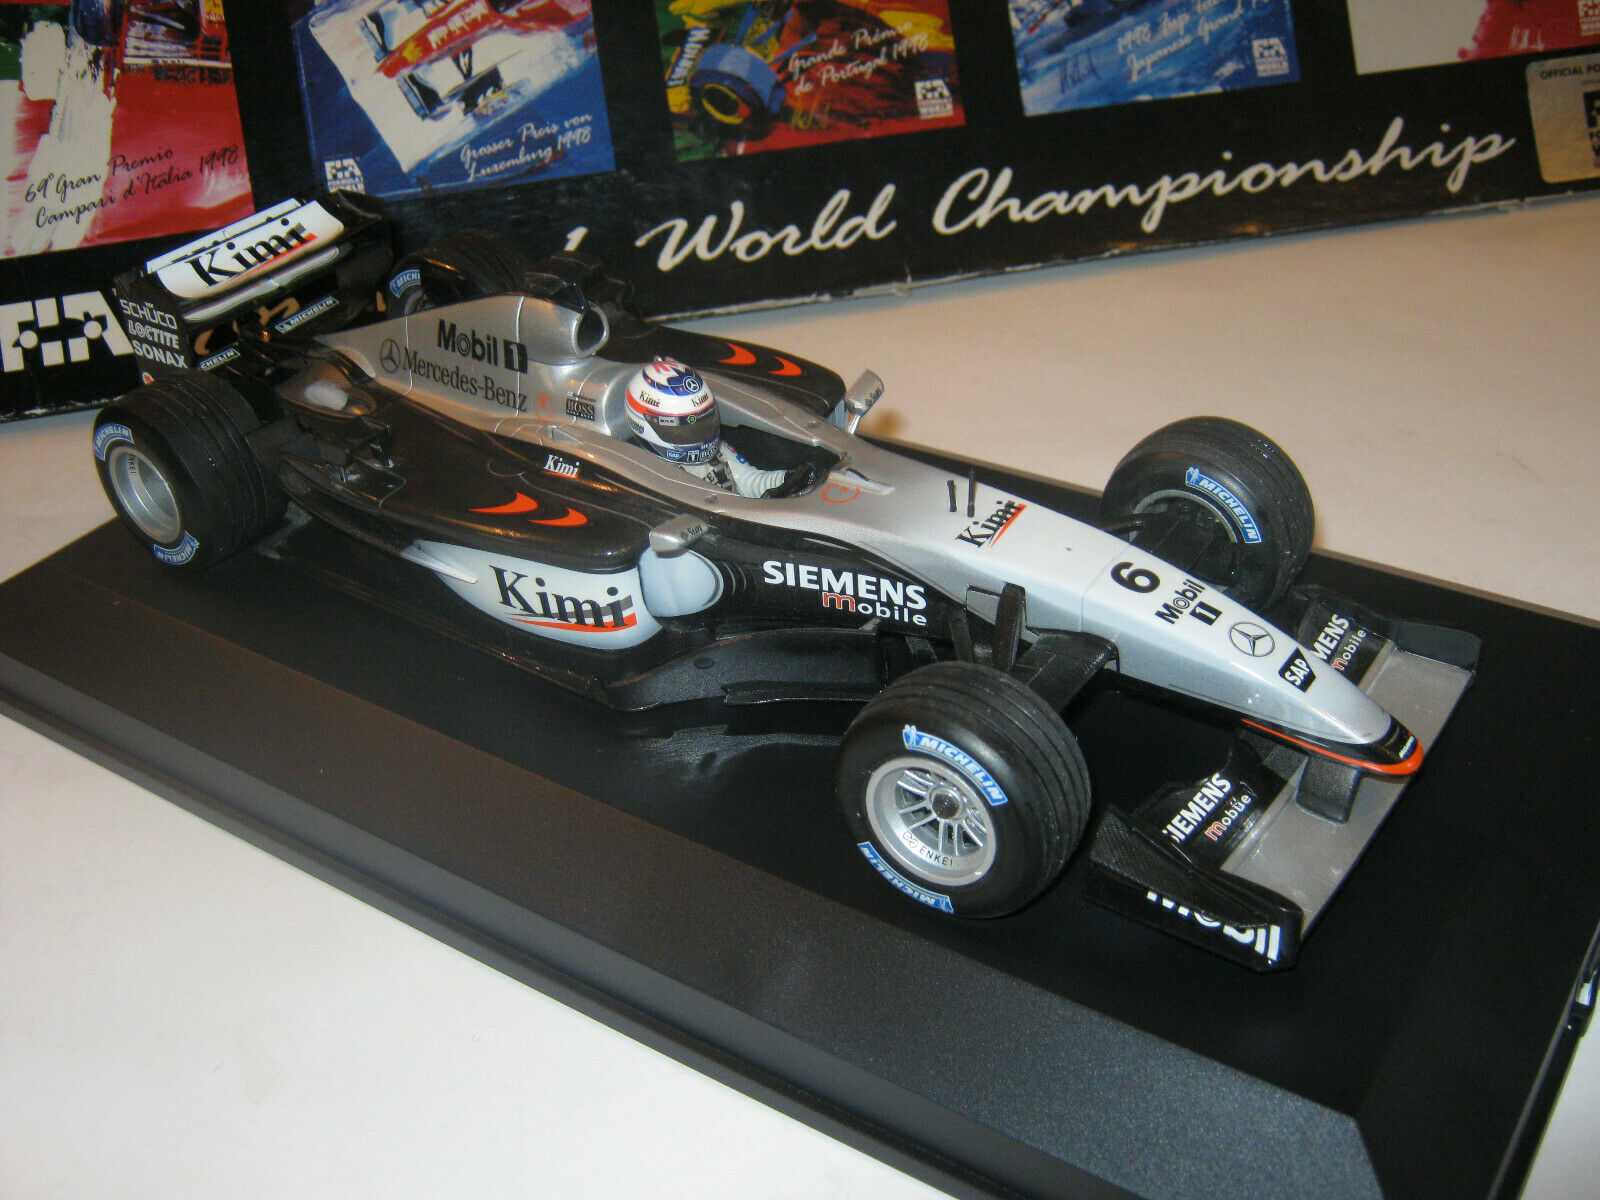 1 18 McLaren Mercedes mp4 17d K. Raikkonen 2002 in Brandnew Showcase Top